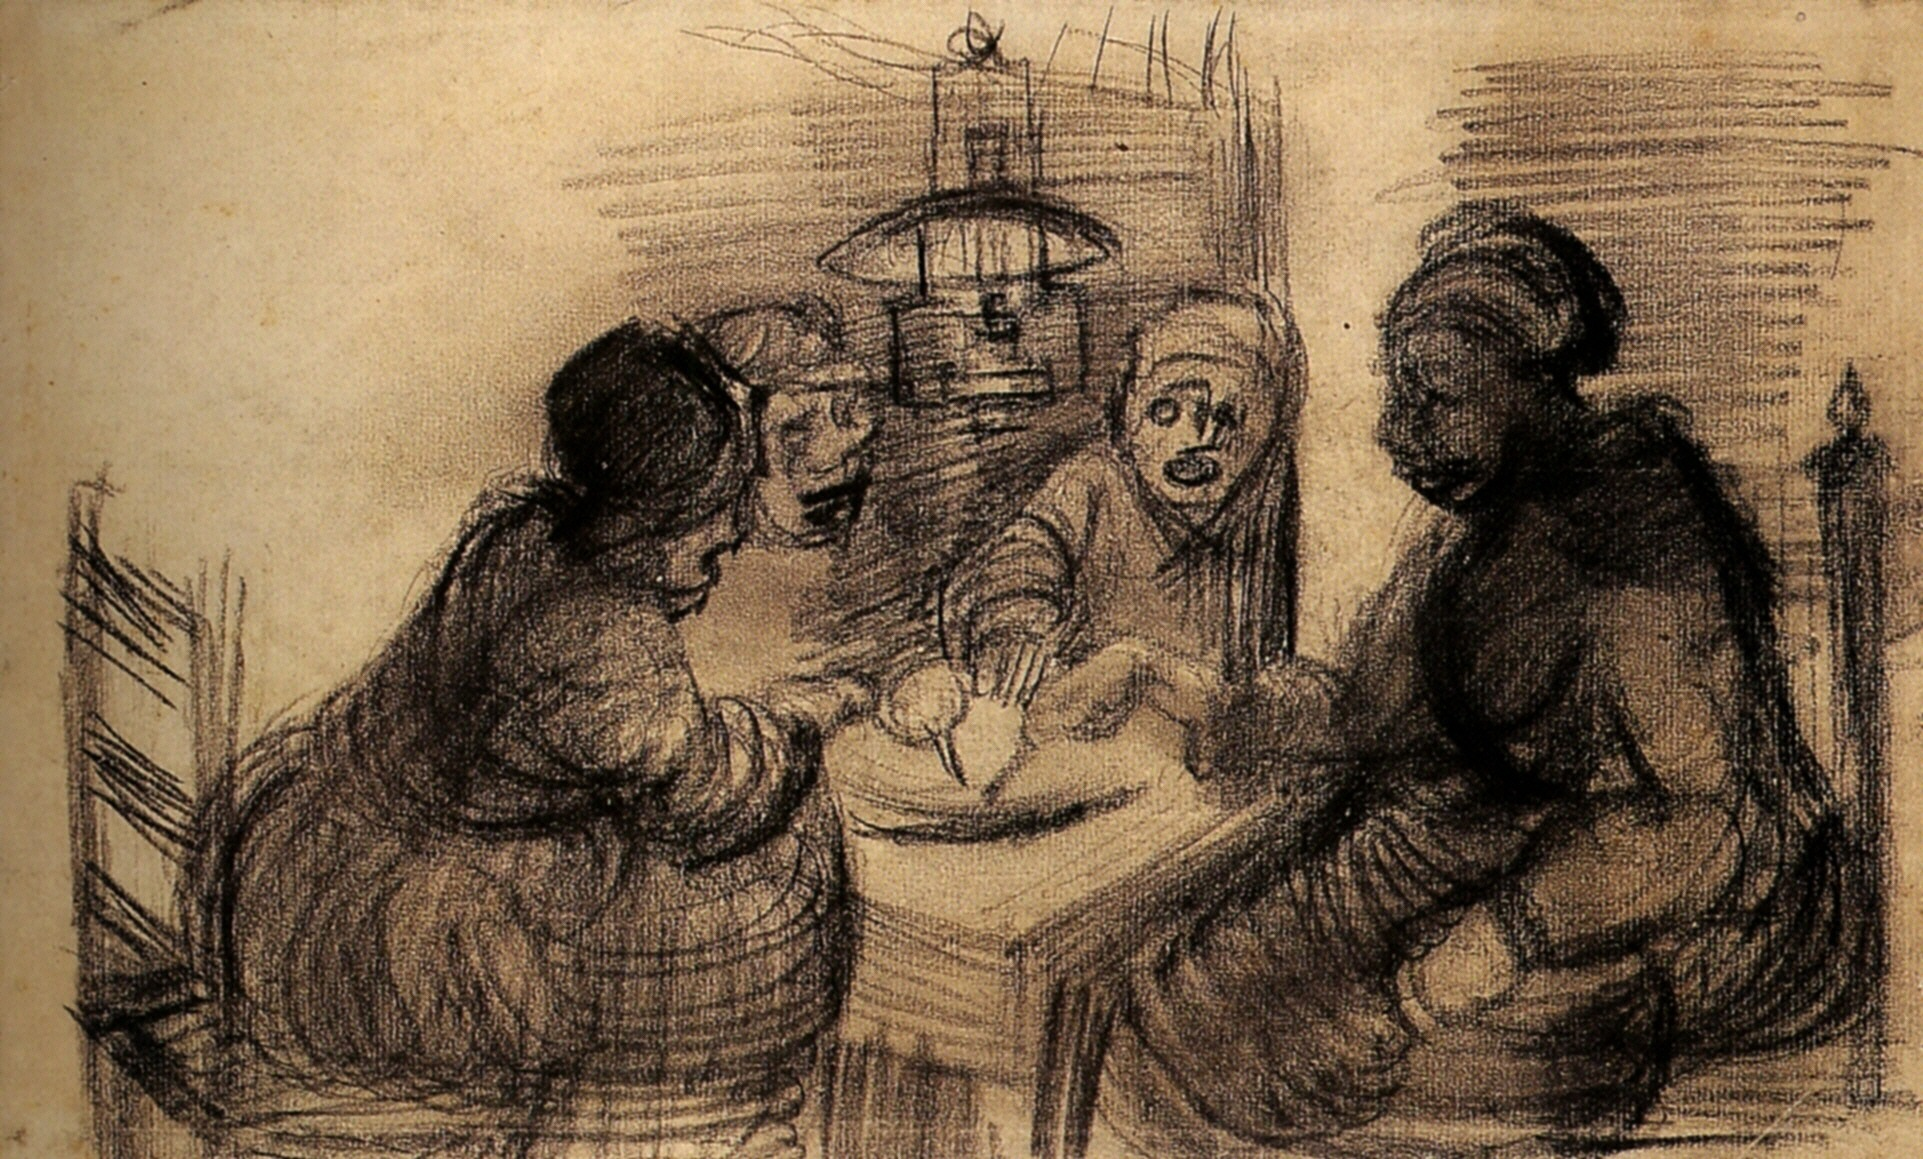 comparative analysis of two vincent van goghs paintings essay Vincent van gogh vincent  including around 860 oil paintings, most of them in the last two  he died from his injuries two days later van gogh.